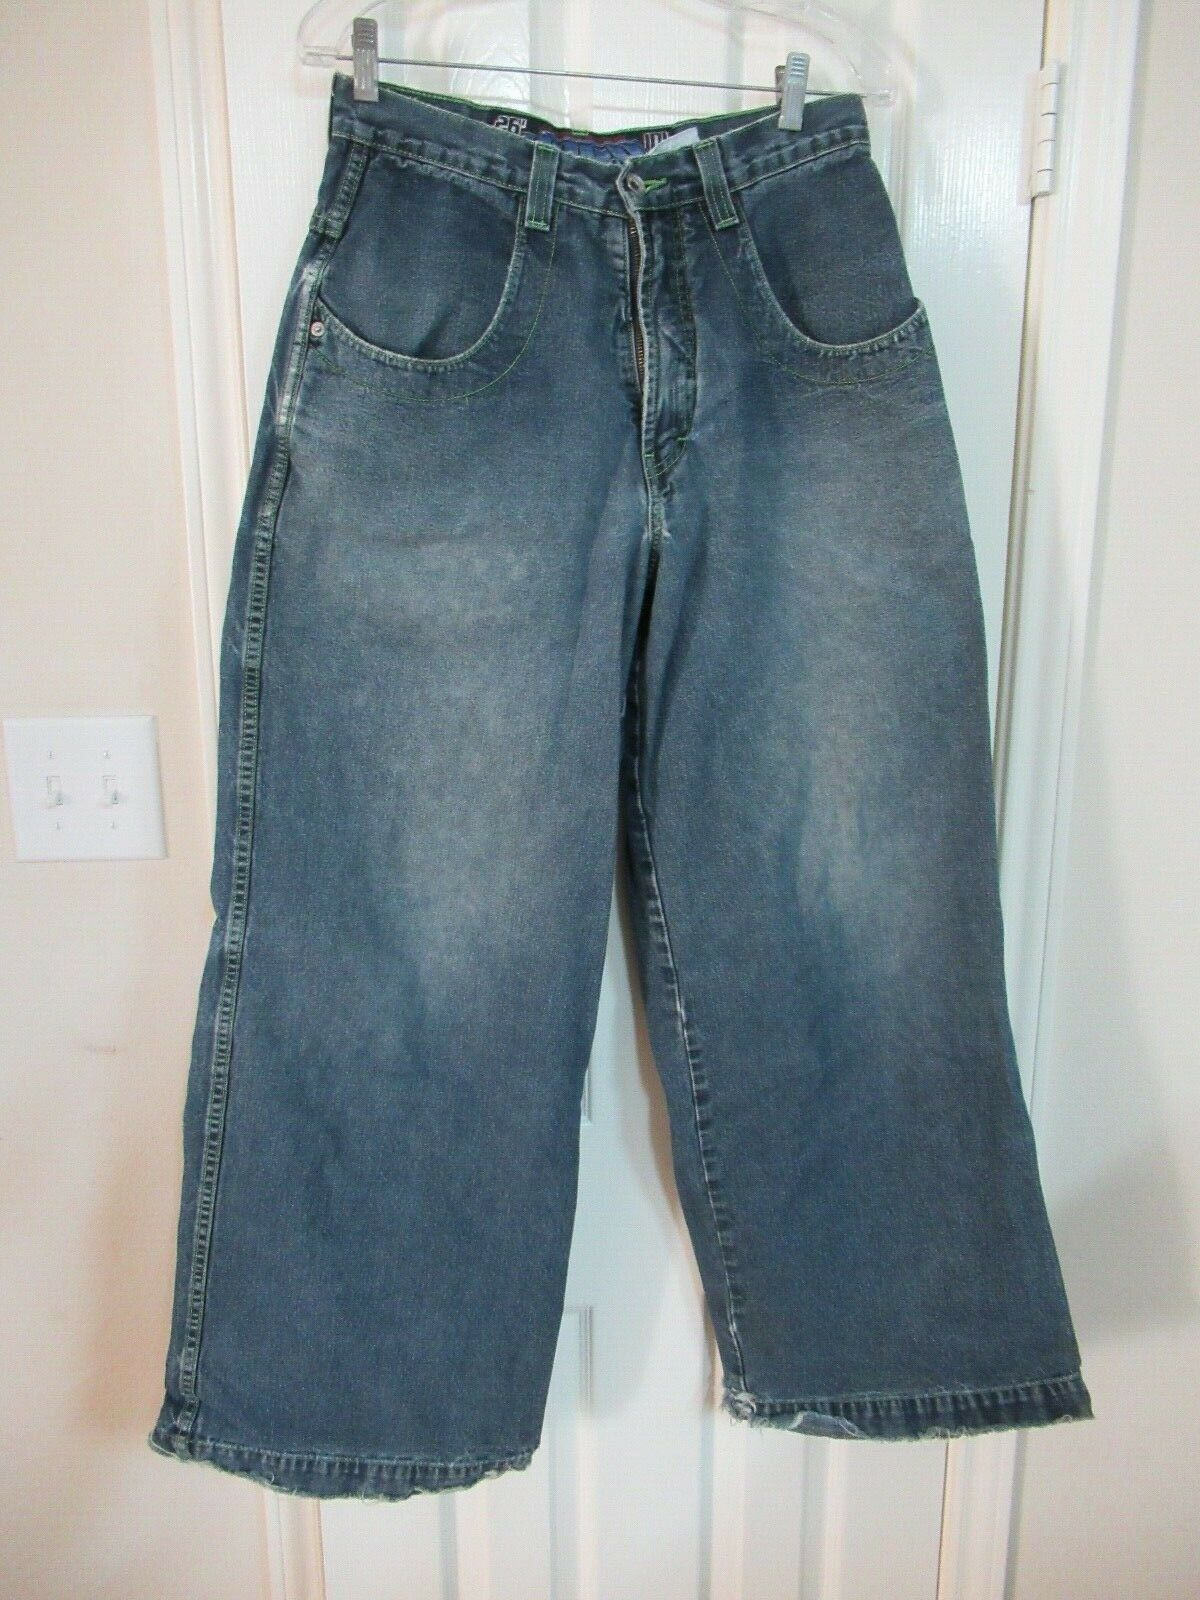 ORIGINAL VINTAGE JNCO DENIM blueE JEANS TWIN CANNON 31W 32L MADE IN USA WIDE LEG